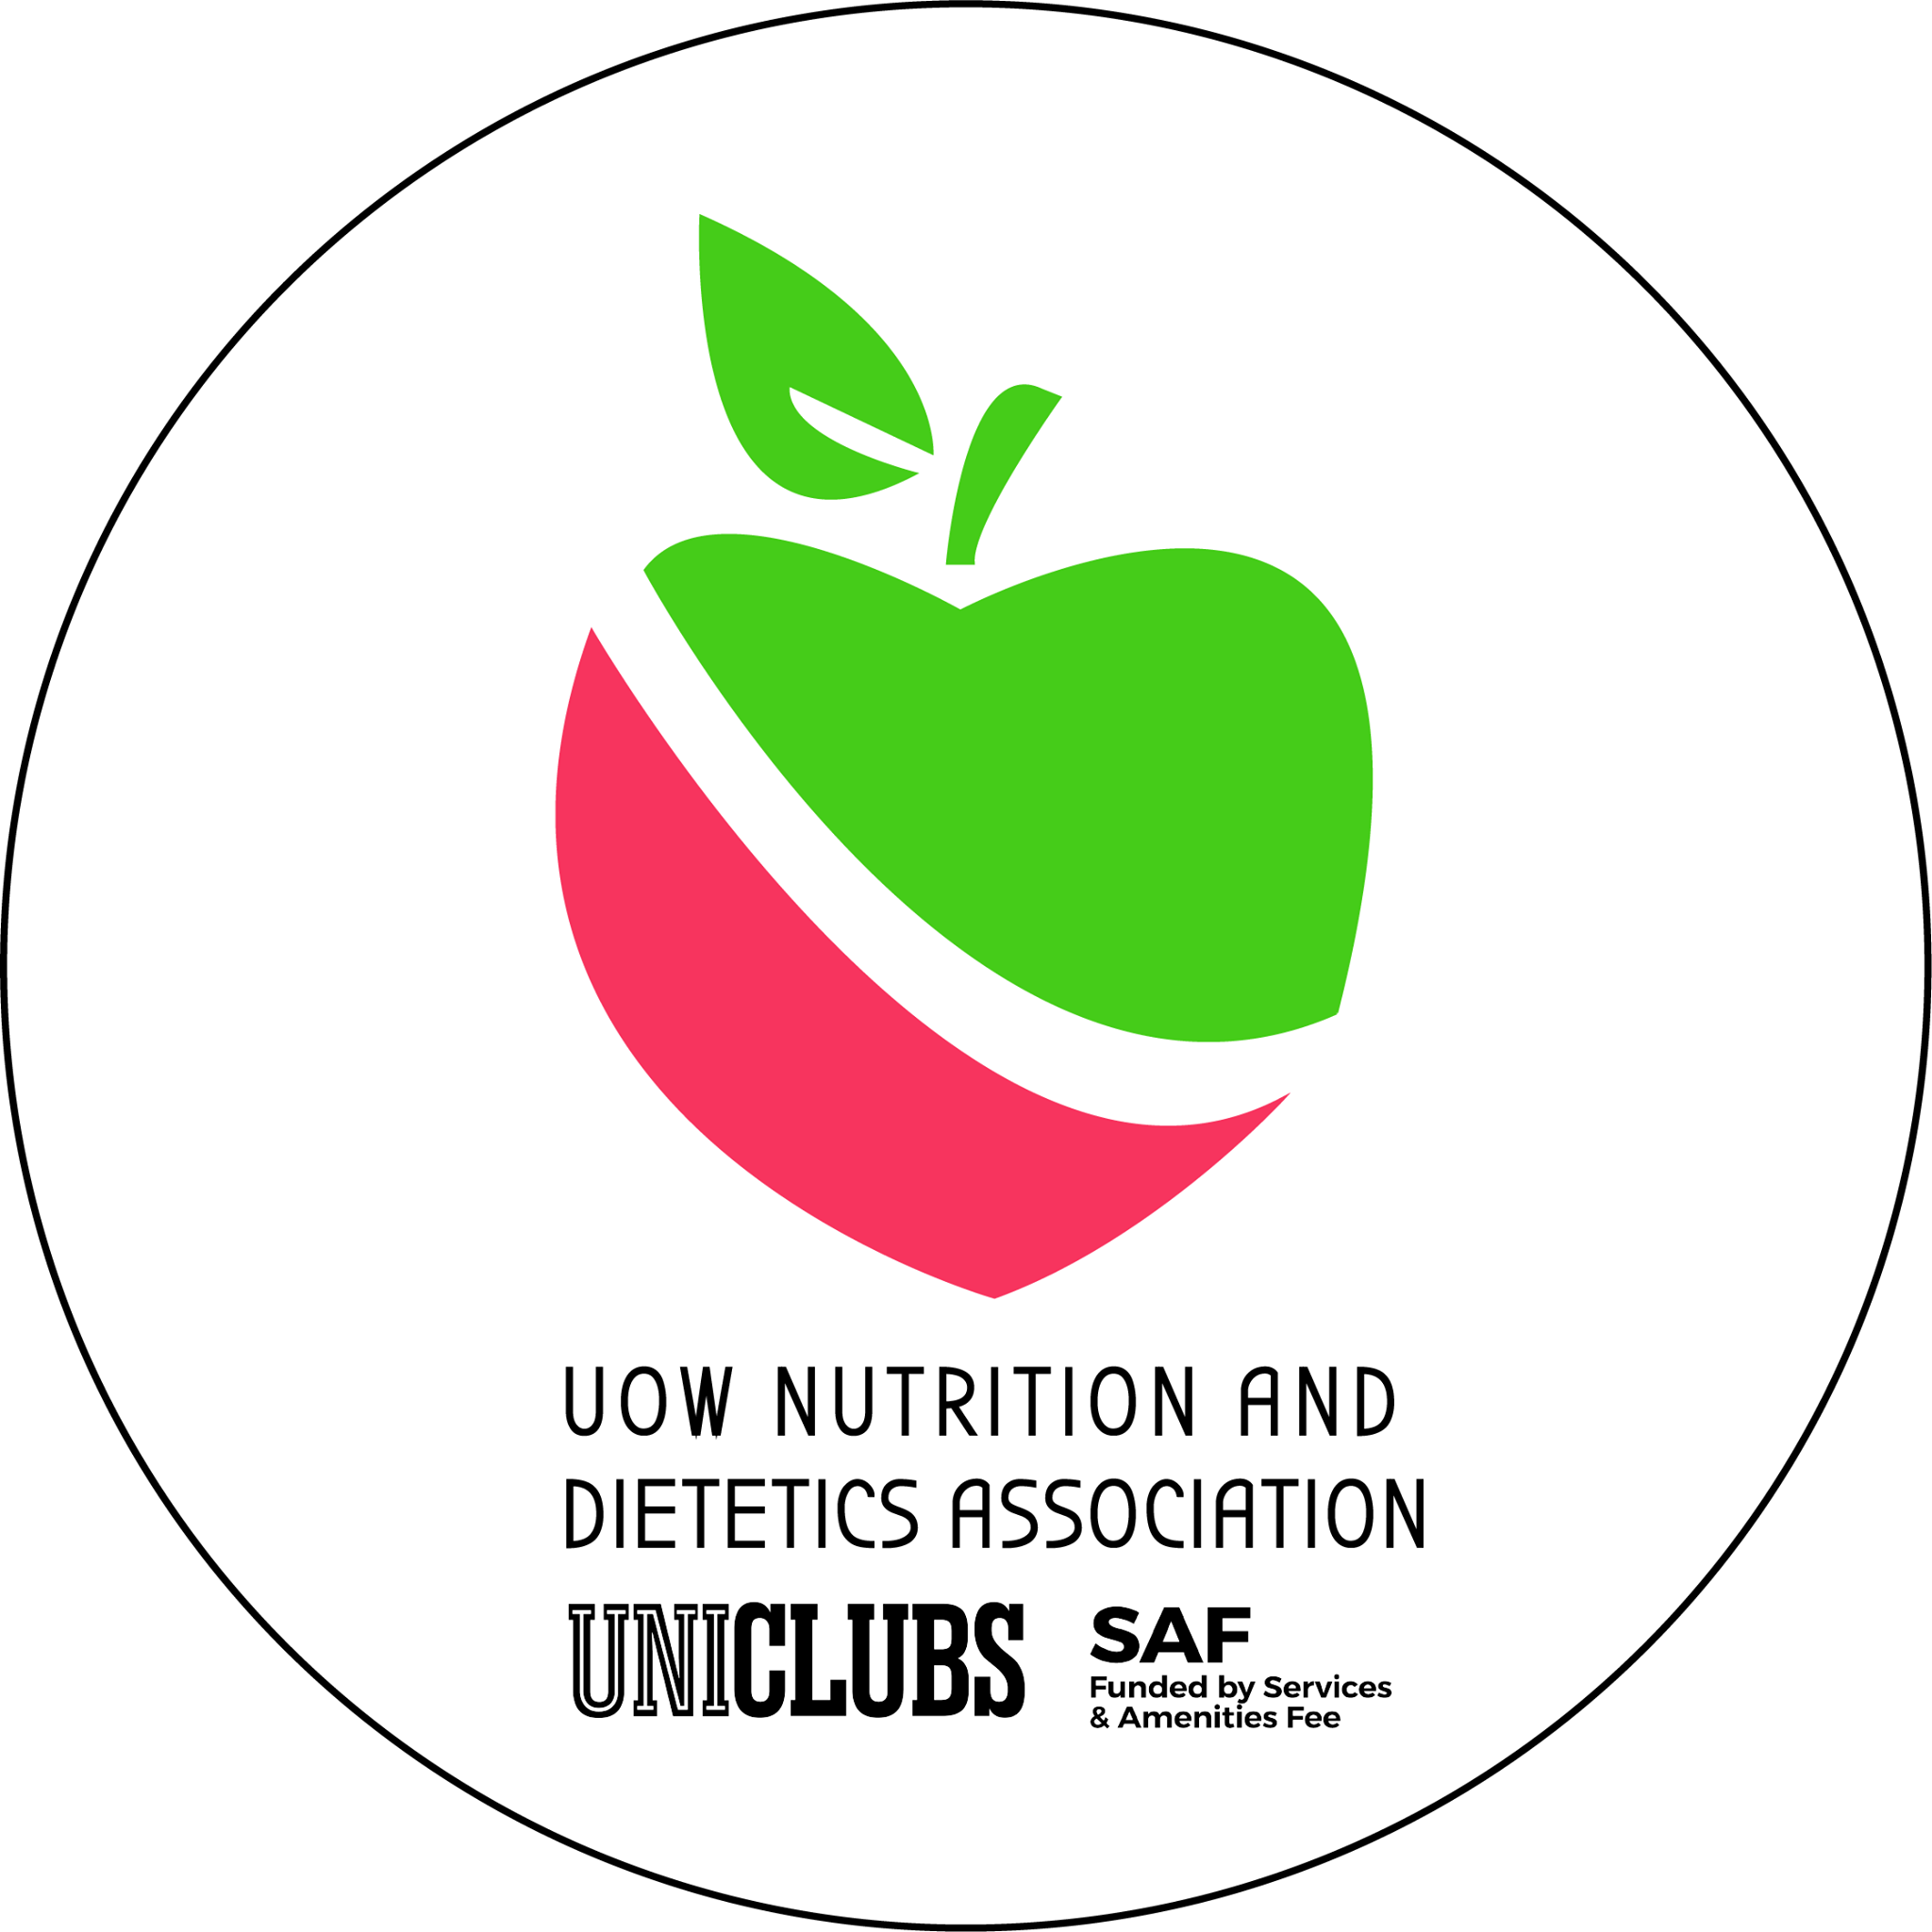 UniClubs - UOW Nutrition and Dietetics Association Logo